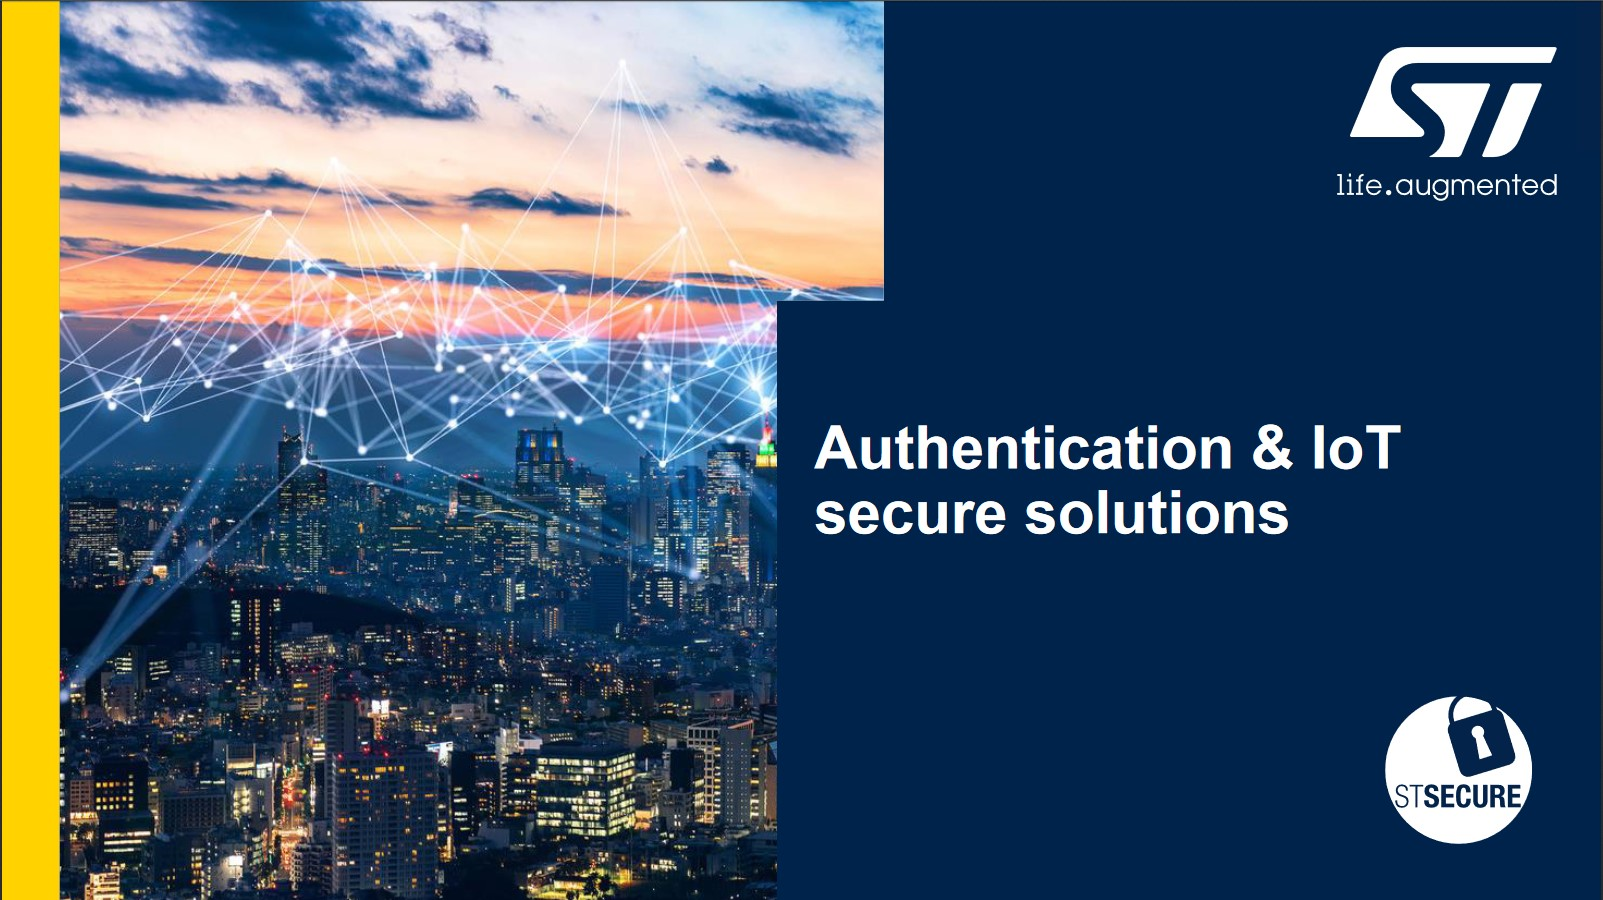 Authentication & IoT secure solutions